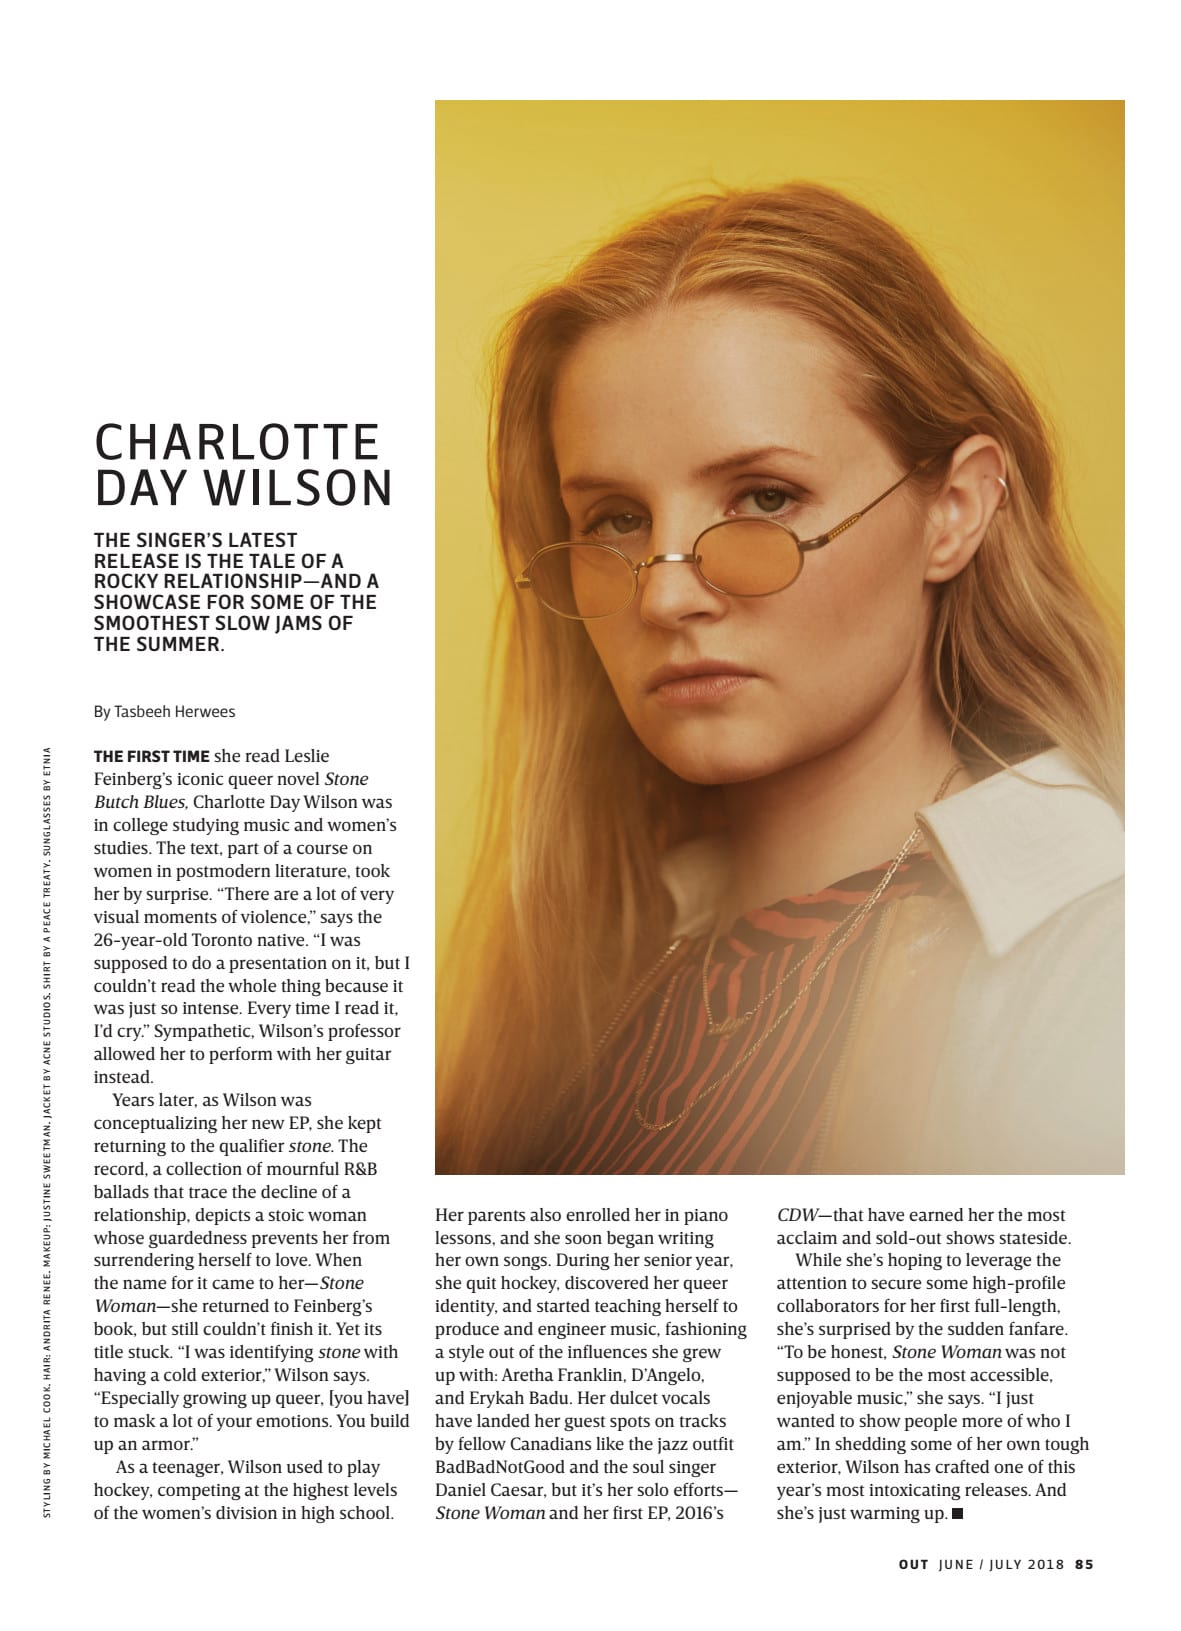 Profile of Charlotte Day Wilson for Out Magazine